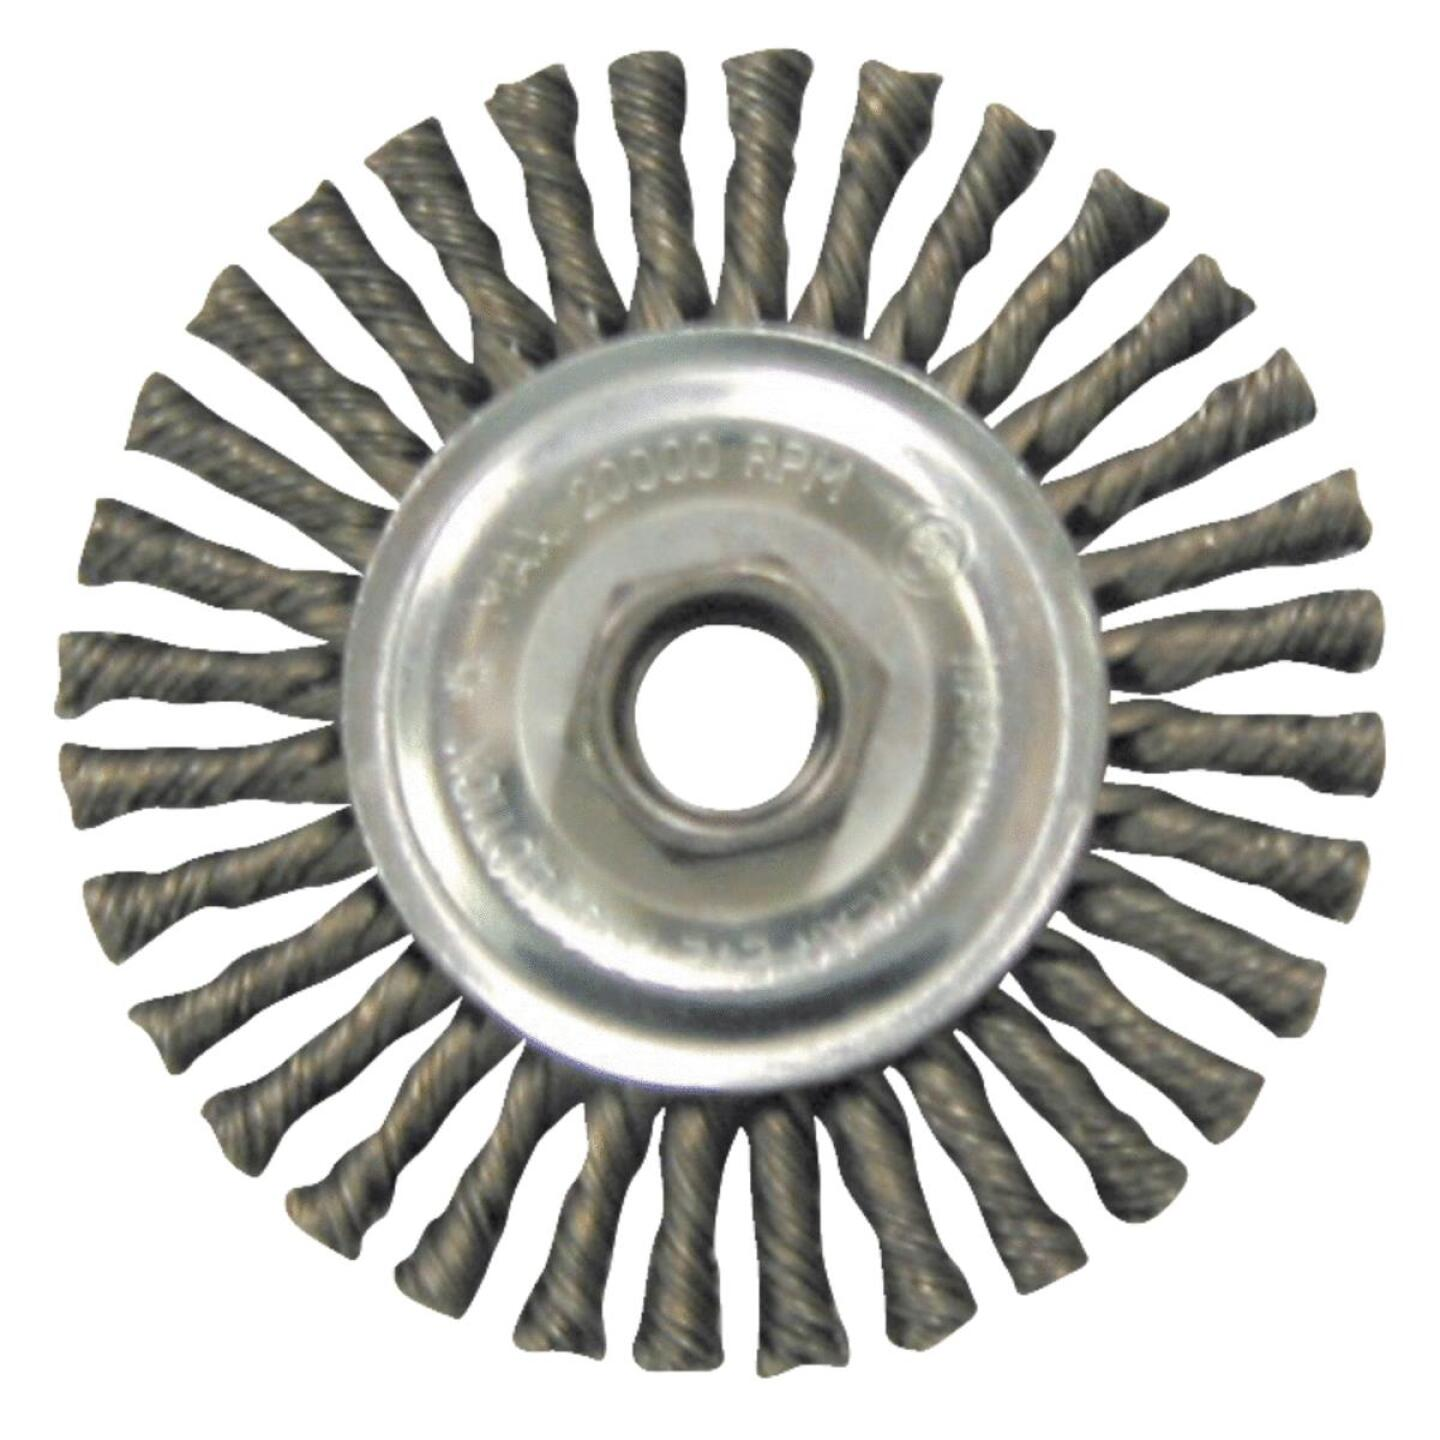 Weiler Vortec 4 In. Twisted/Knotted 0.014 In. Angle Grinder Wire Wheel Image 1